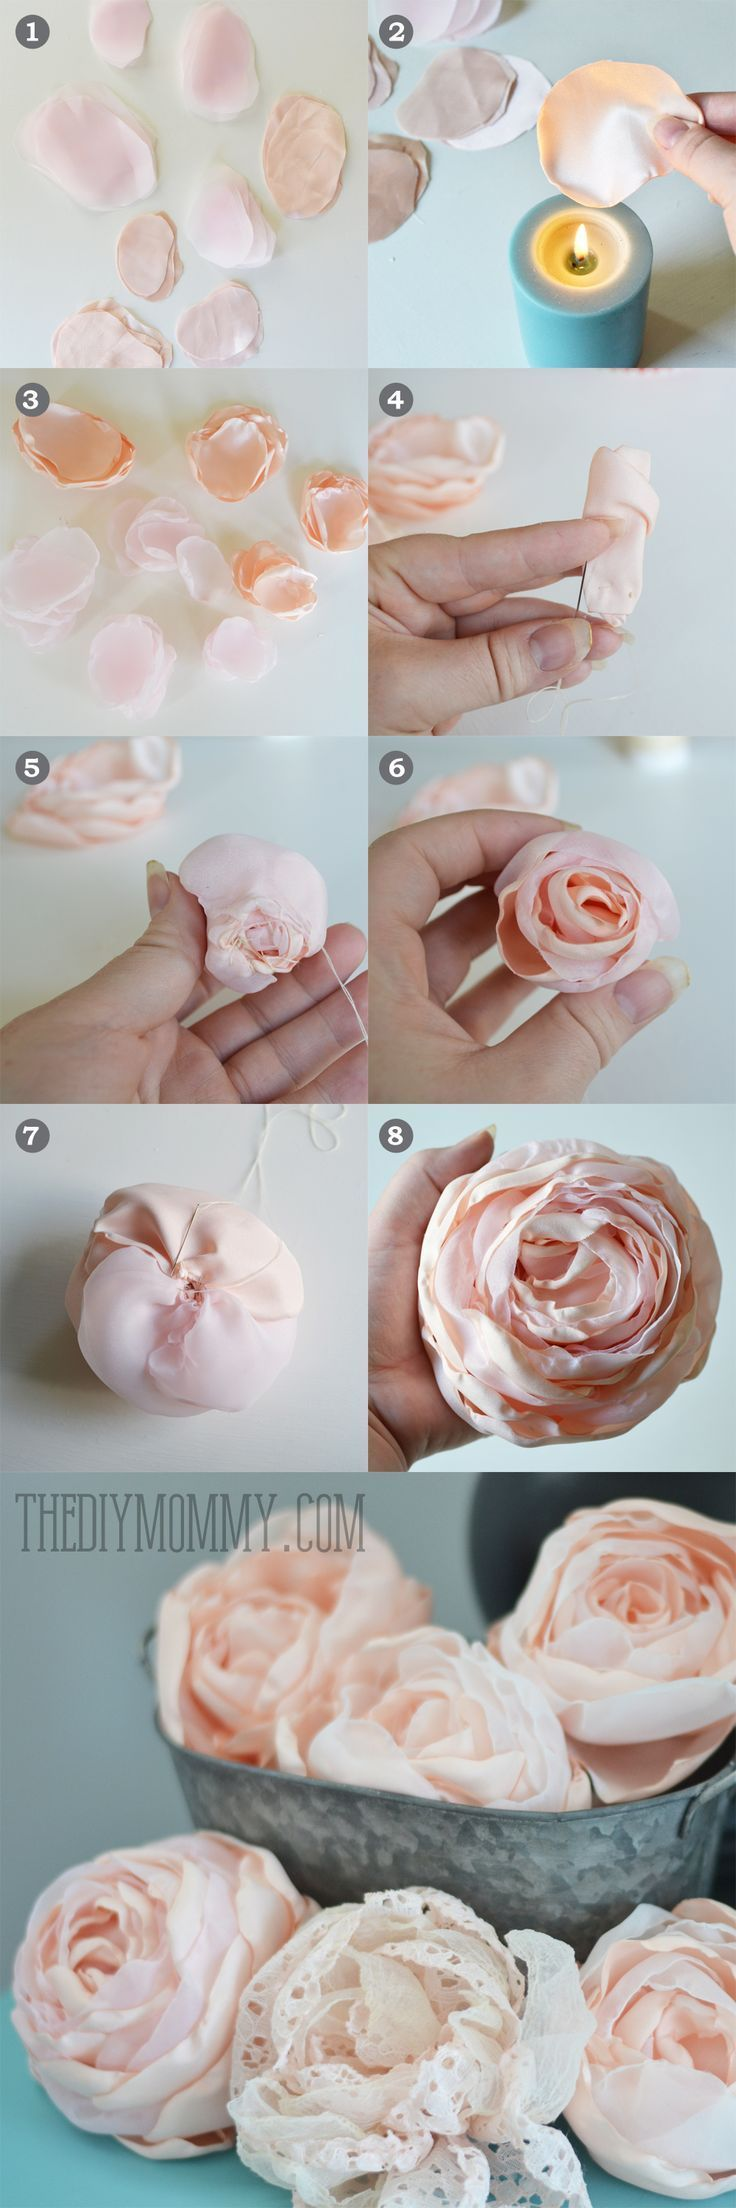 DIY Paper Flowers • Tutorials for easy and elegant paper flower projects, like these DIY peonies and cabbage roses from 'The DIY Mommy'!